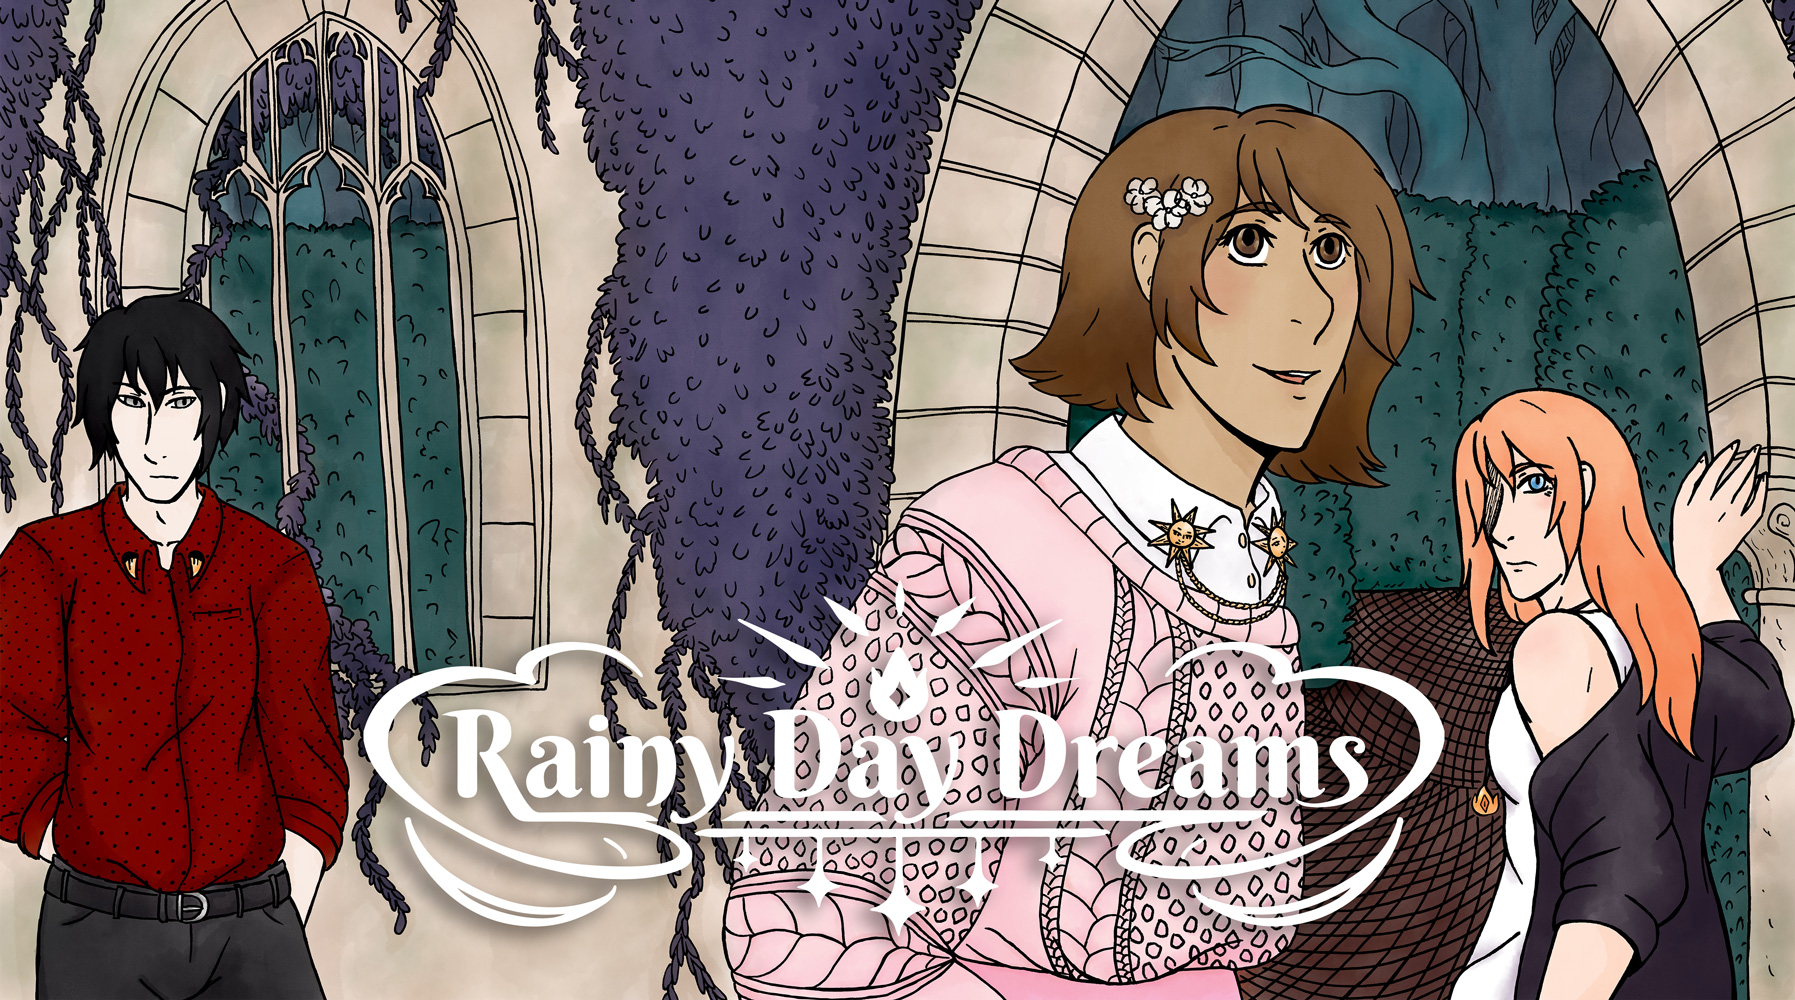 Welcome to Rainy Day Dreams